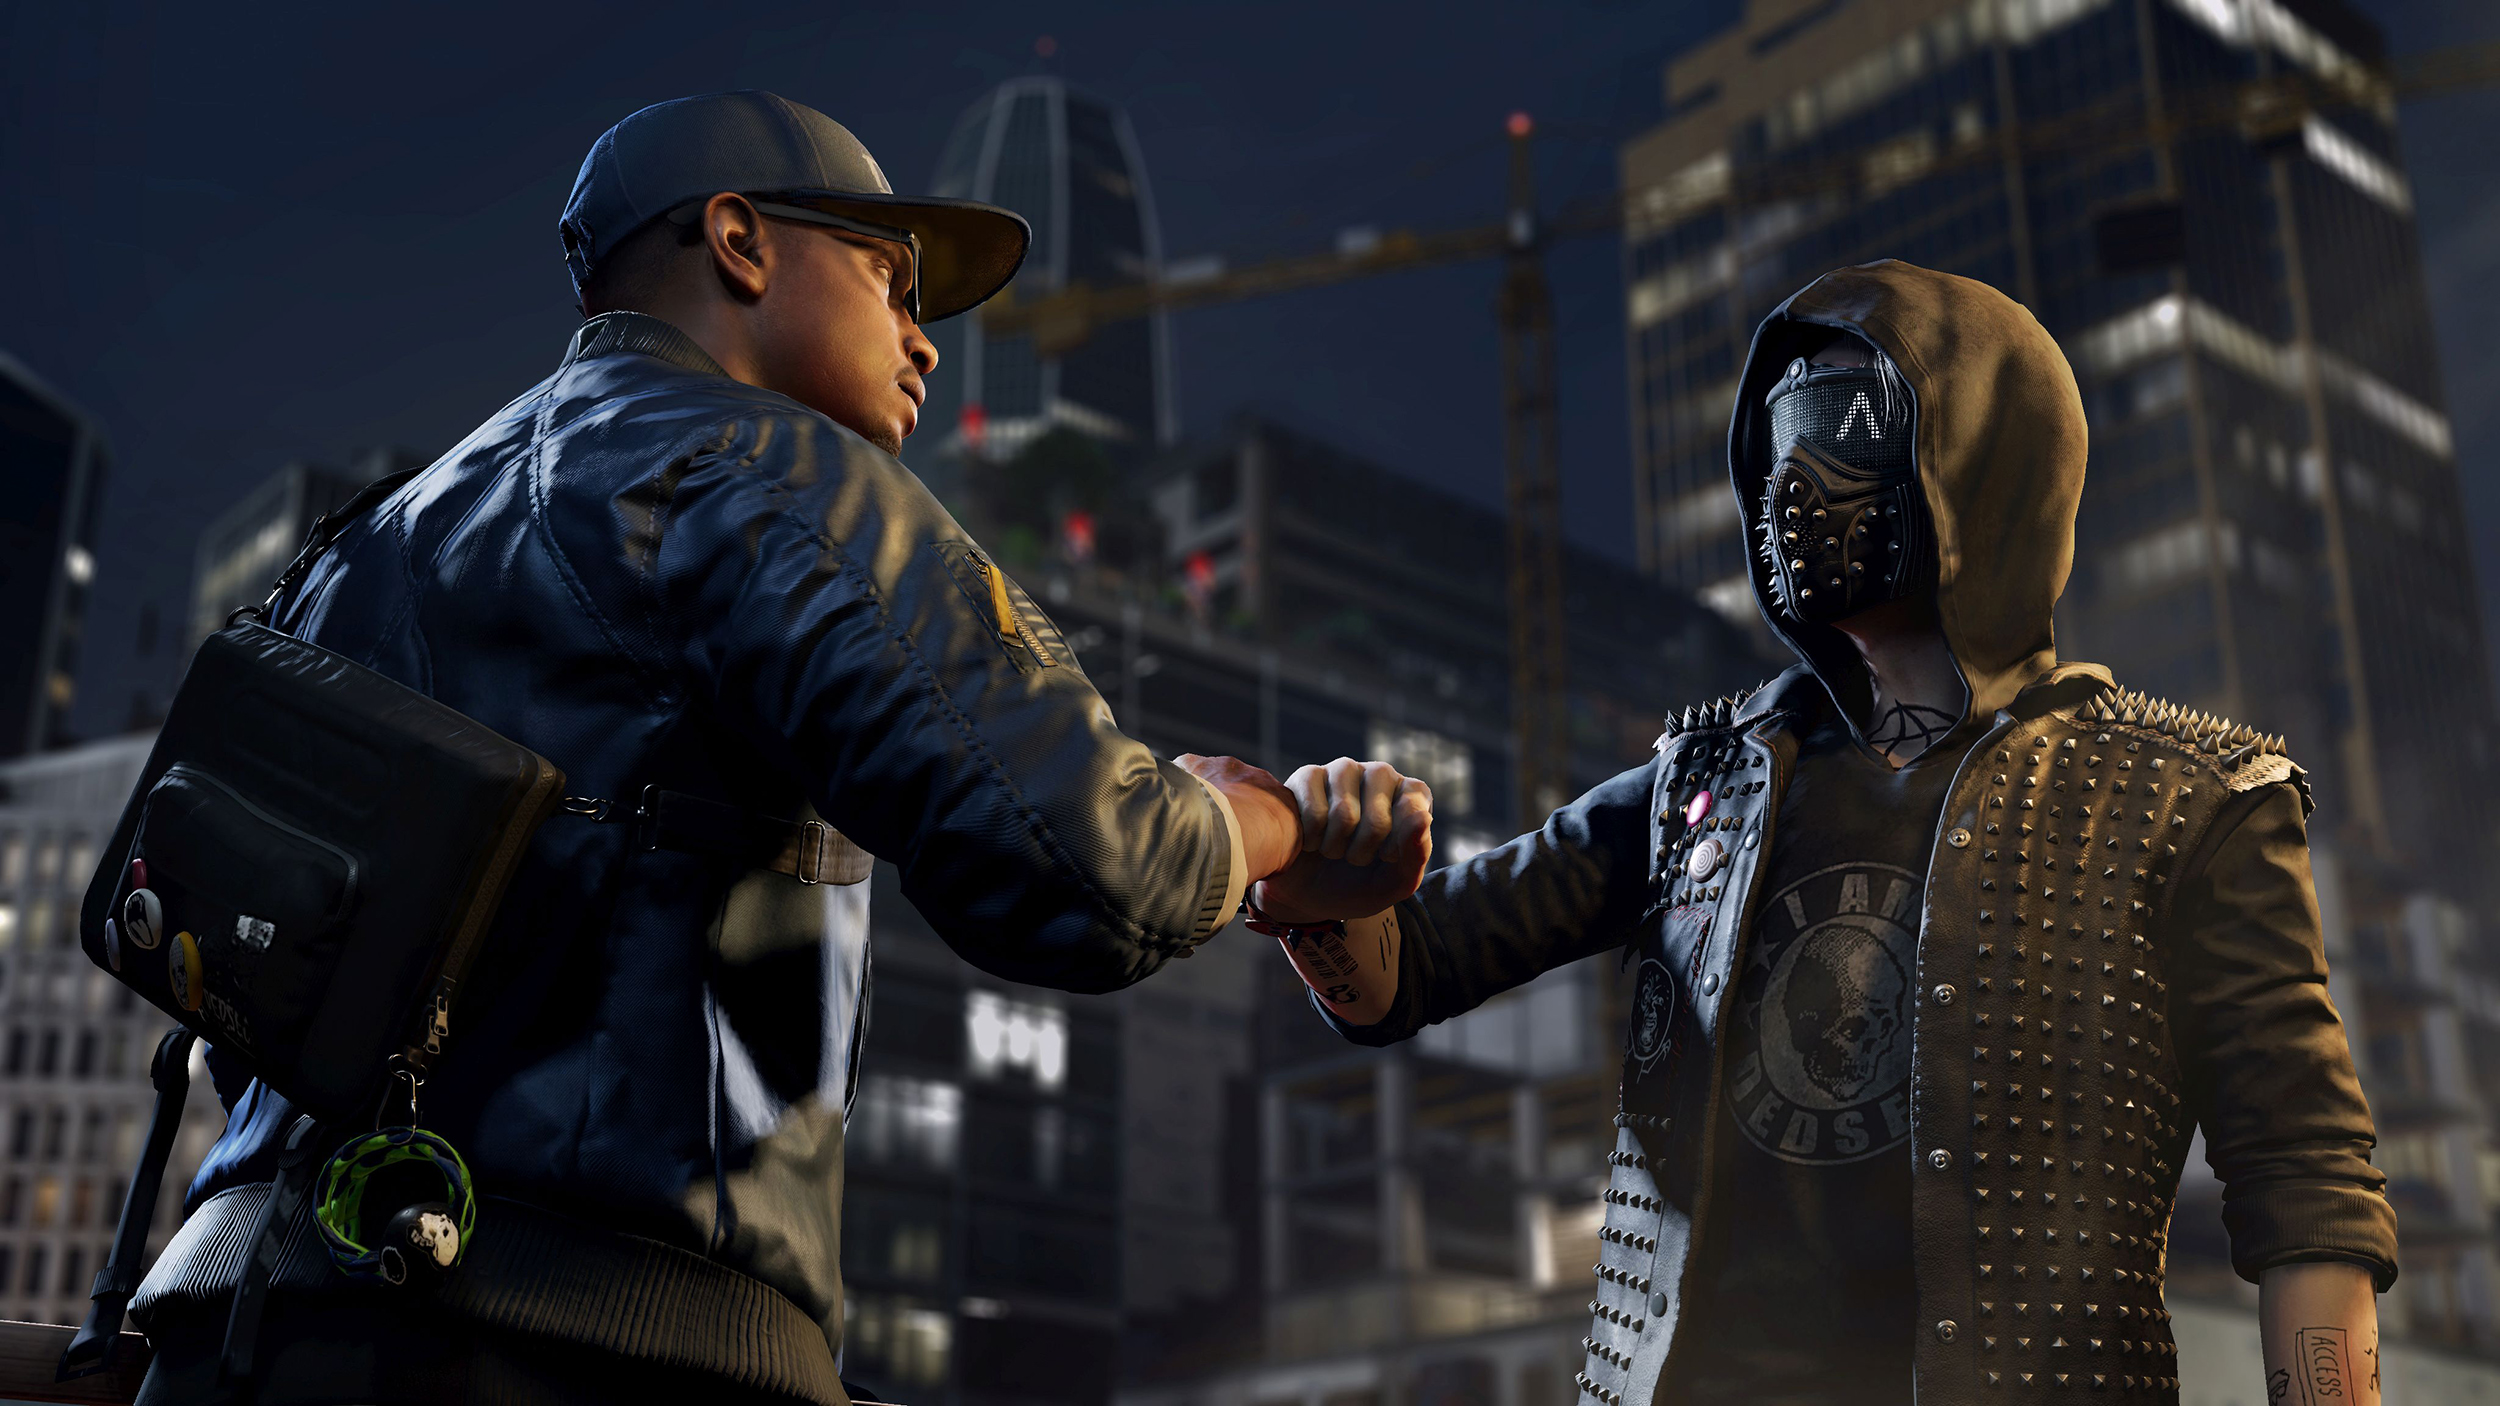 Watch Dogs 2 Wallpapers Pictures Images